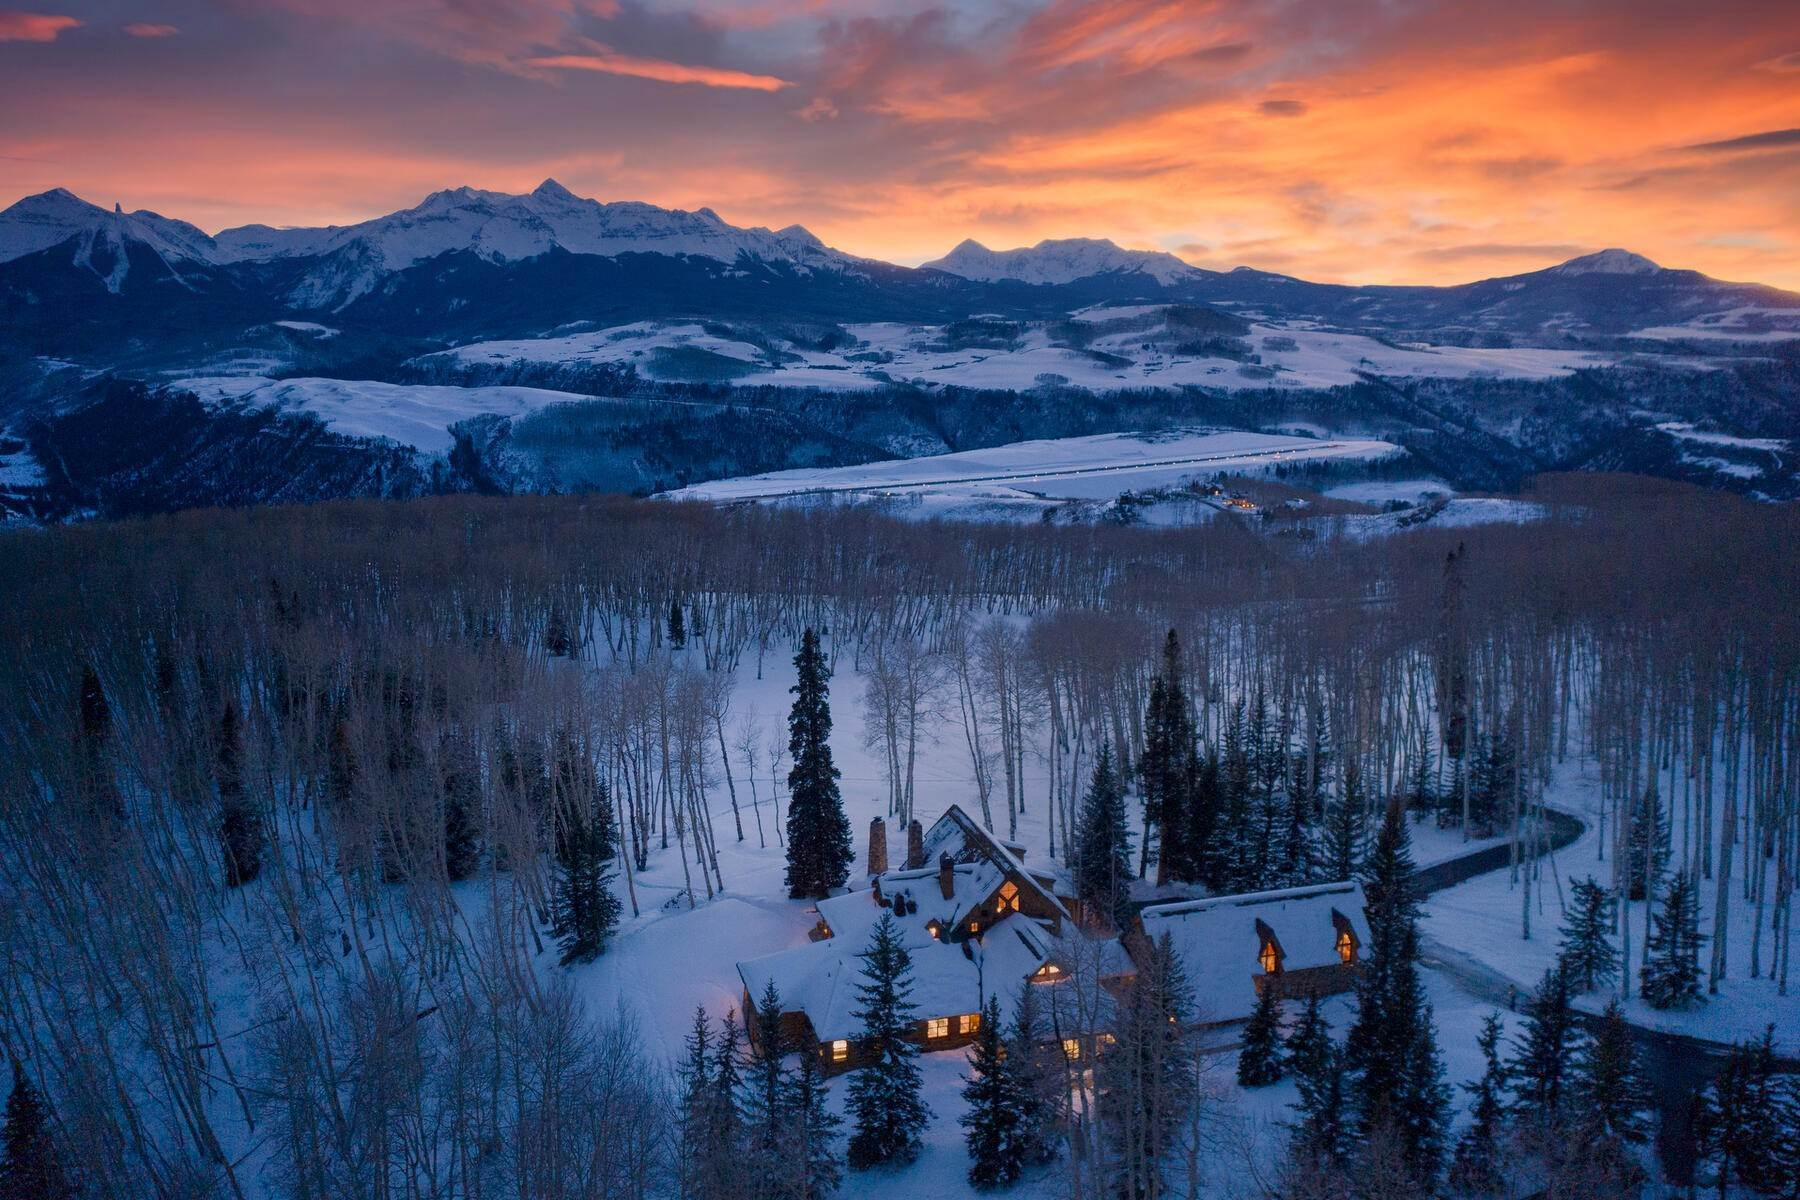 Single Family Homes for Sale at Luxury Meets Legend 115 Francisco Way, Telluride, Colorado, 81435 United States